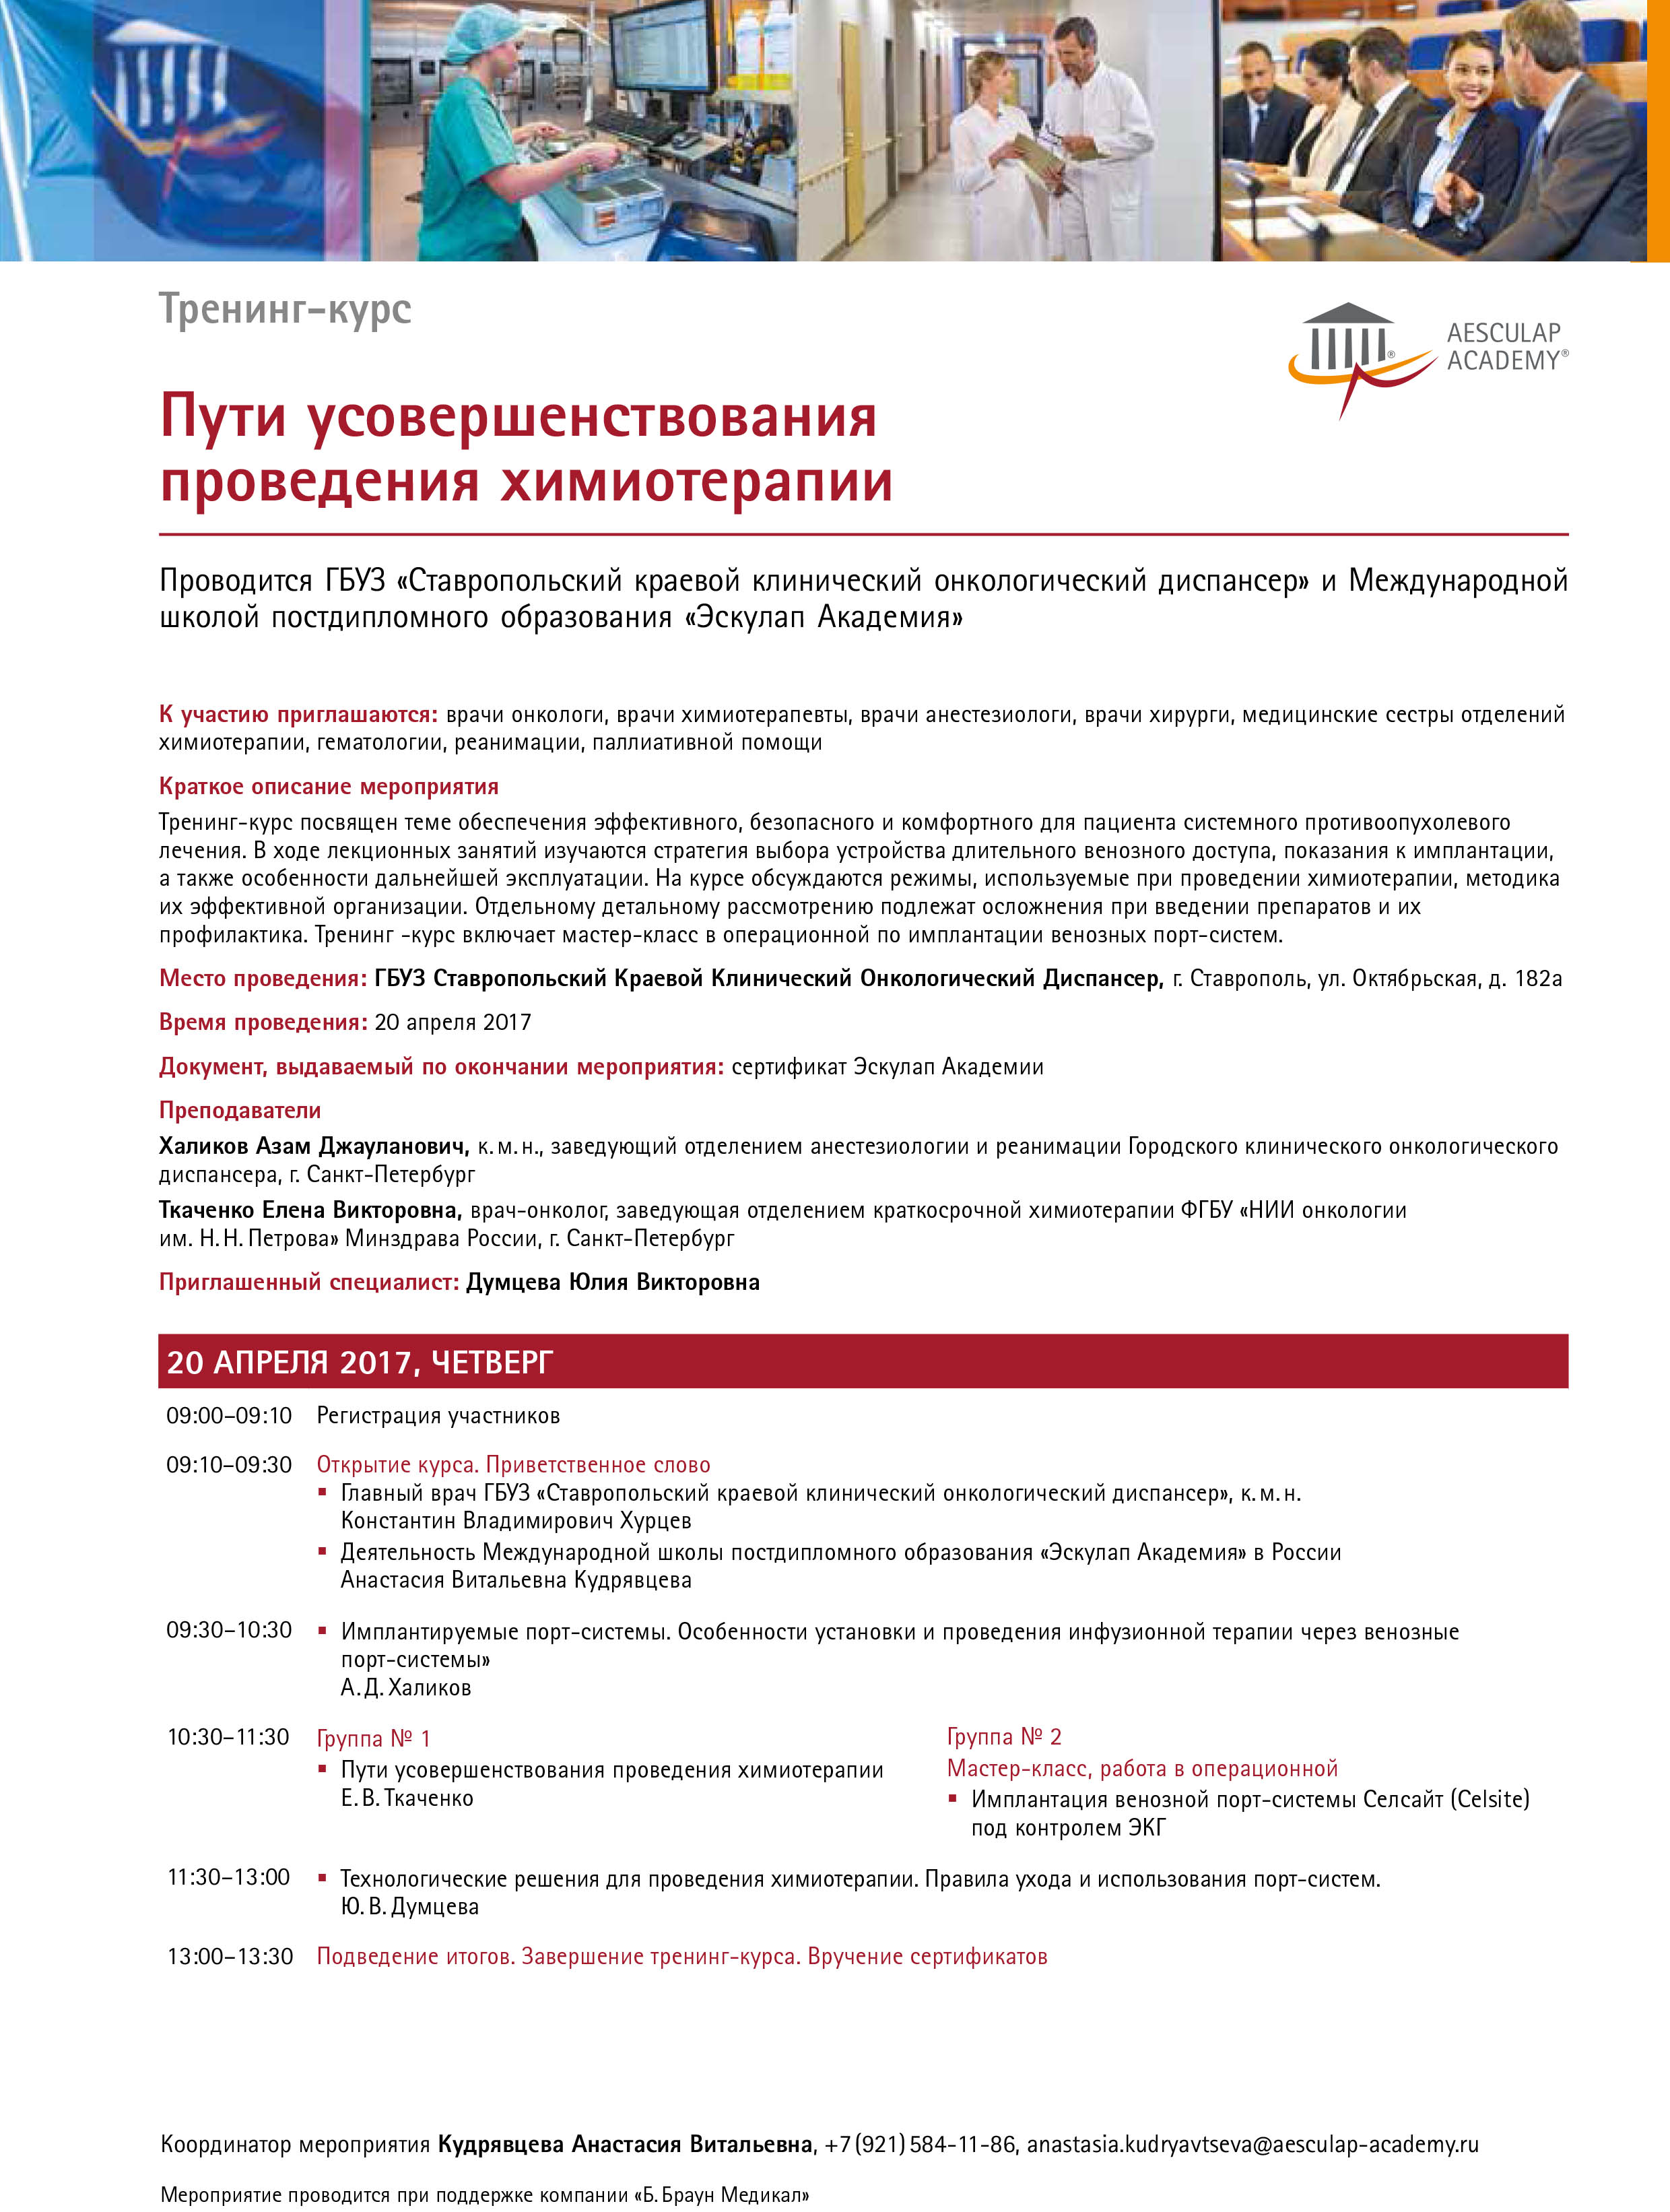 Program. Stavropol. 20.04.17. Chemo